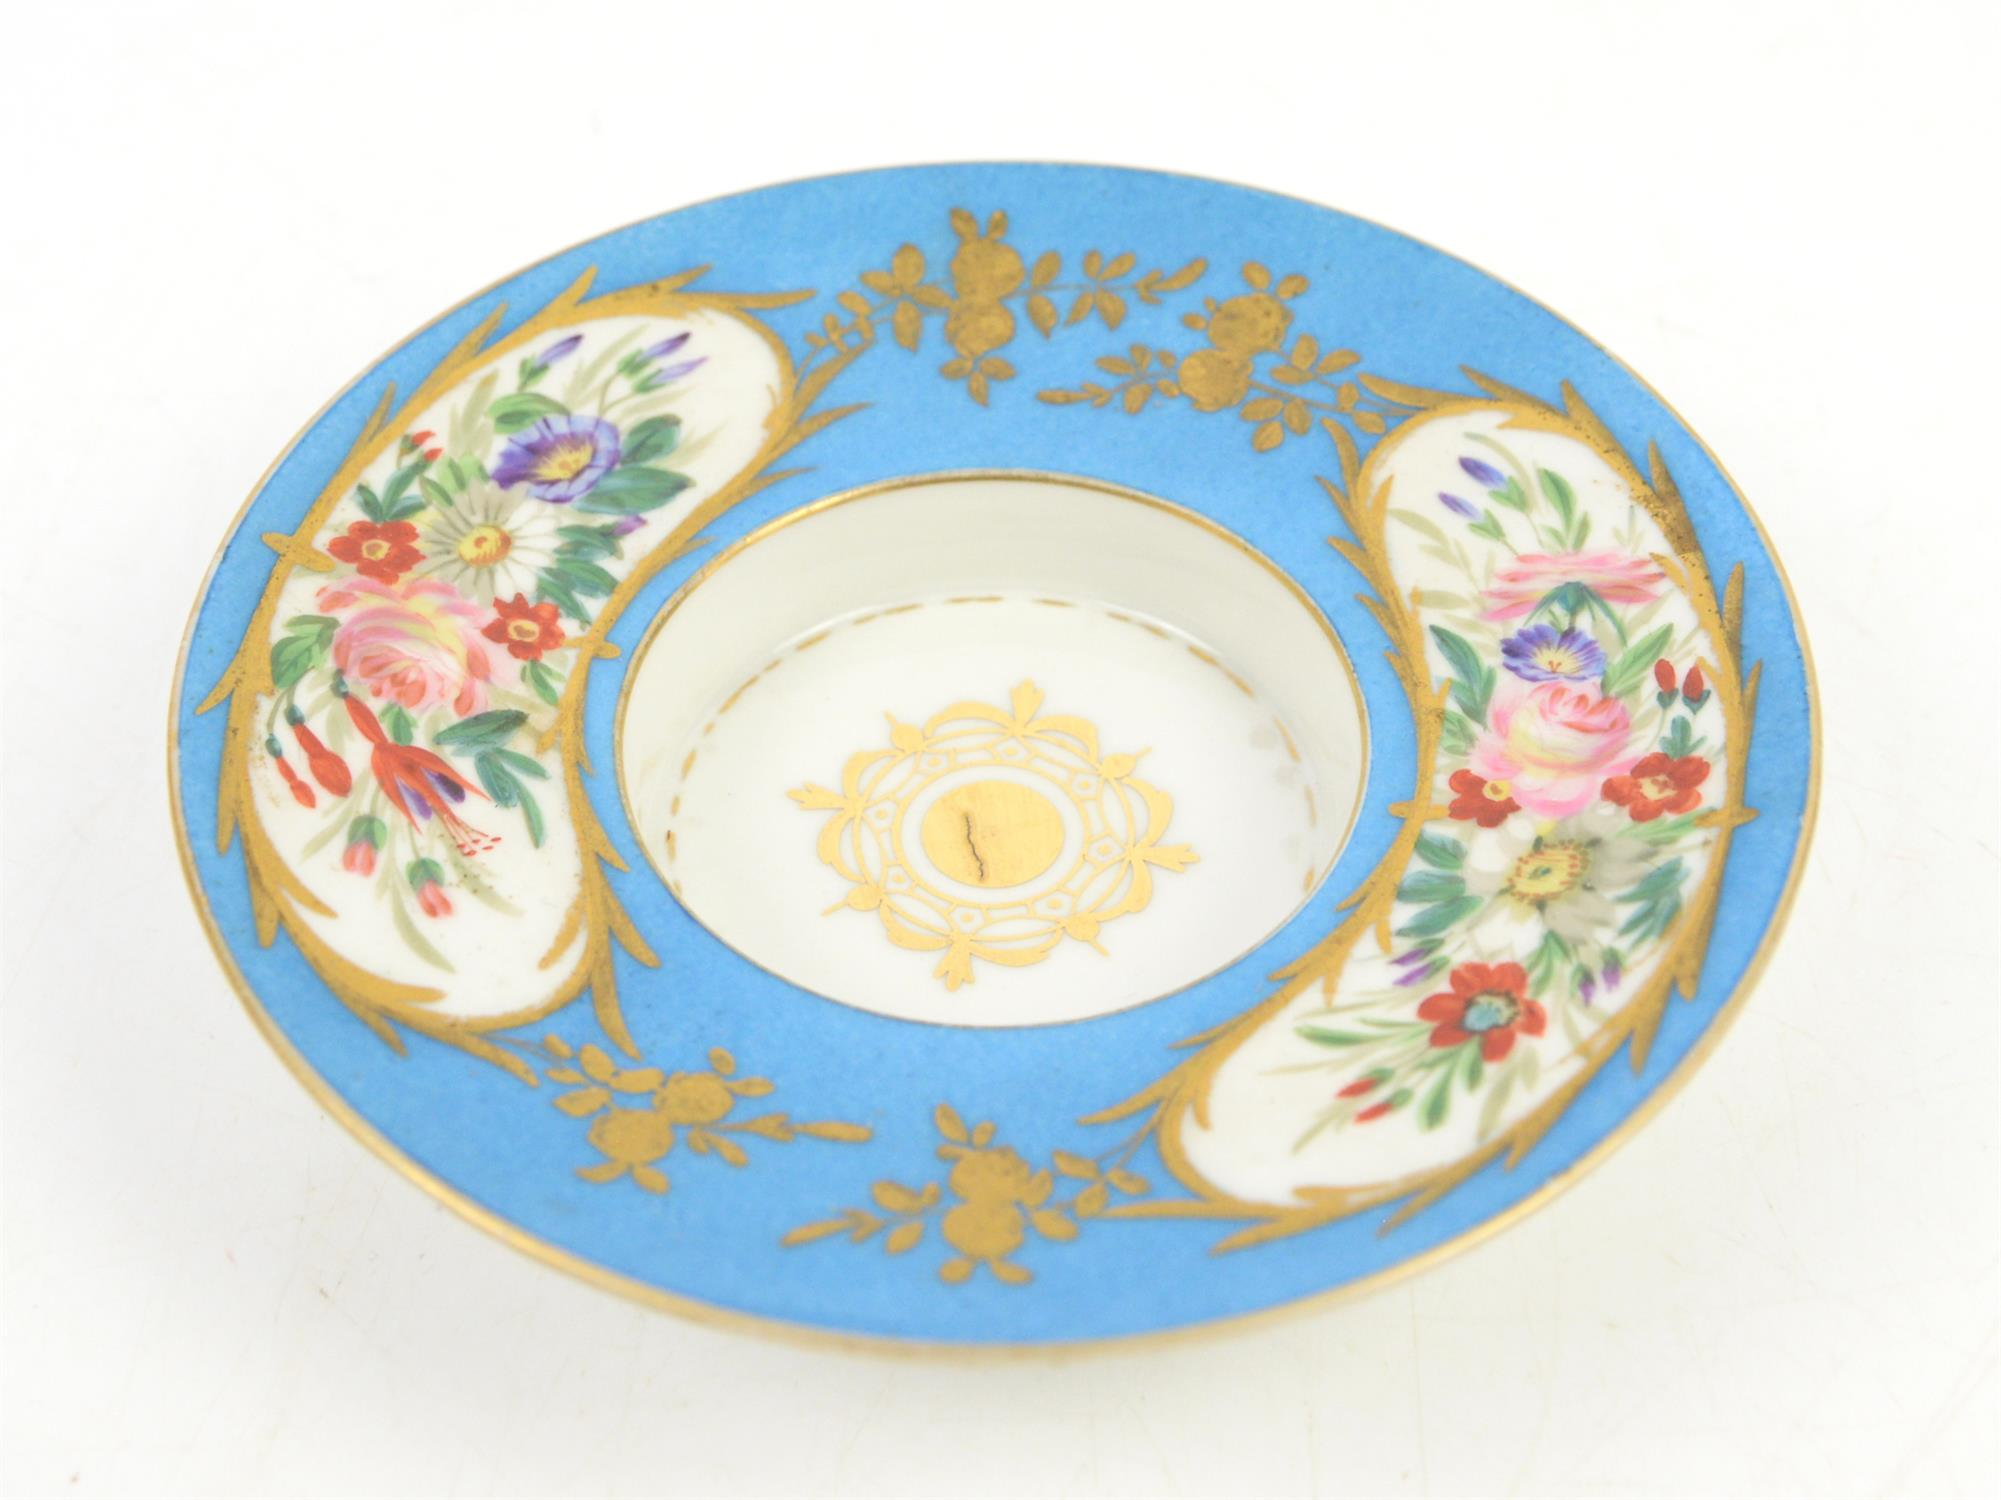 """Early 19th century Sevres """"Bleu Celeste"""" milk cup with cover and saucer, decorated with a portrait - Image 4 of 5"""